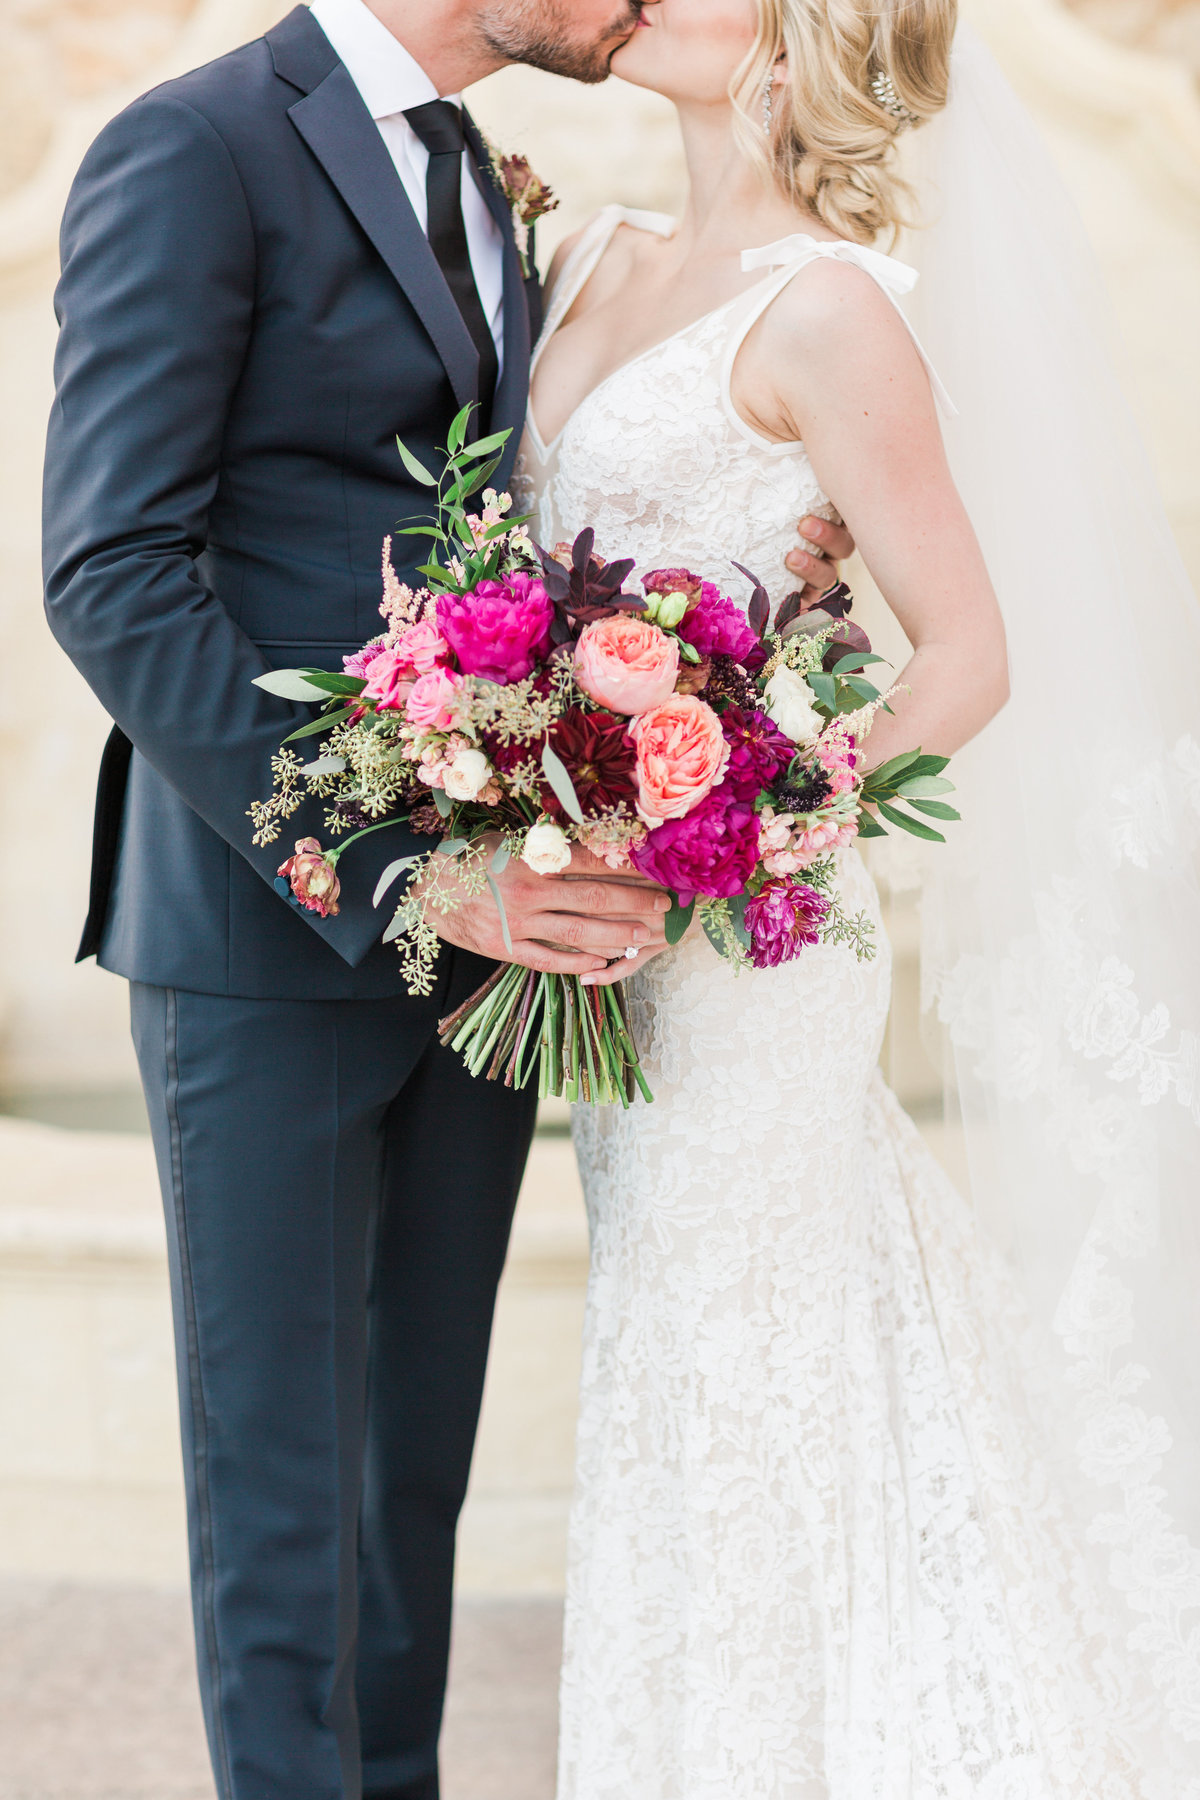 Malibu_Rocky_Oaks_Wedding_Inbal_Dror_Valorie_Darling_Photography - 113 of 160